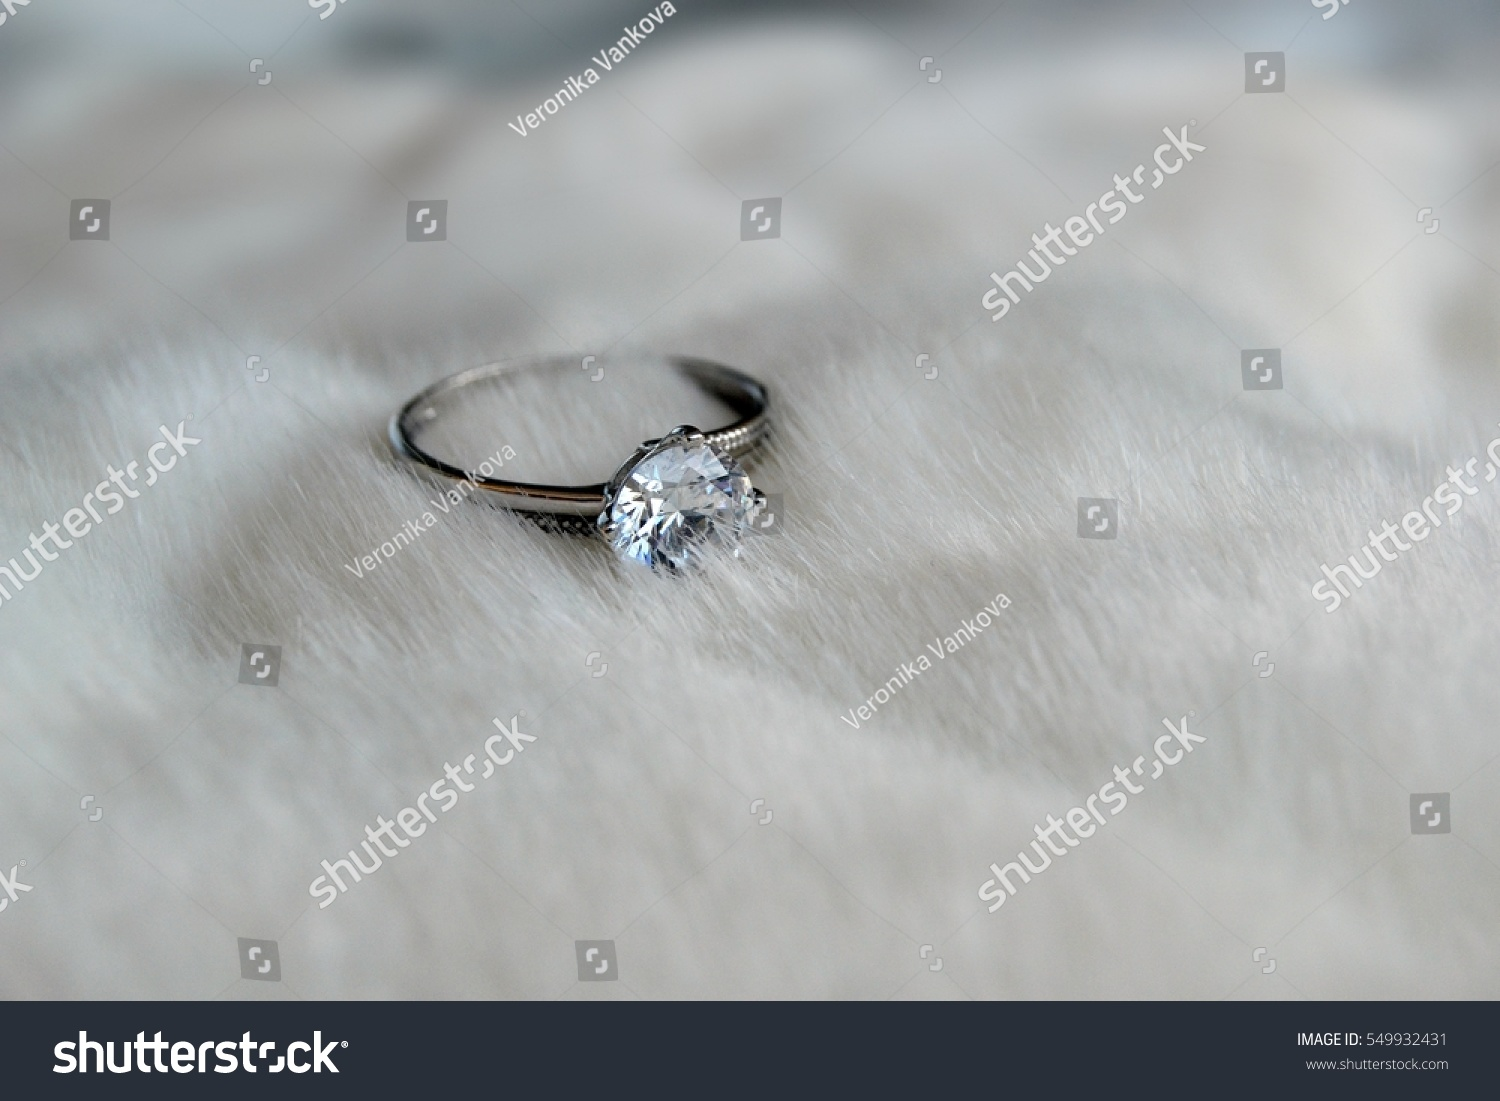 Nice Ring White Gold Diamond On Stock Photo 549932431 - Shutterstock